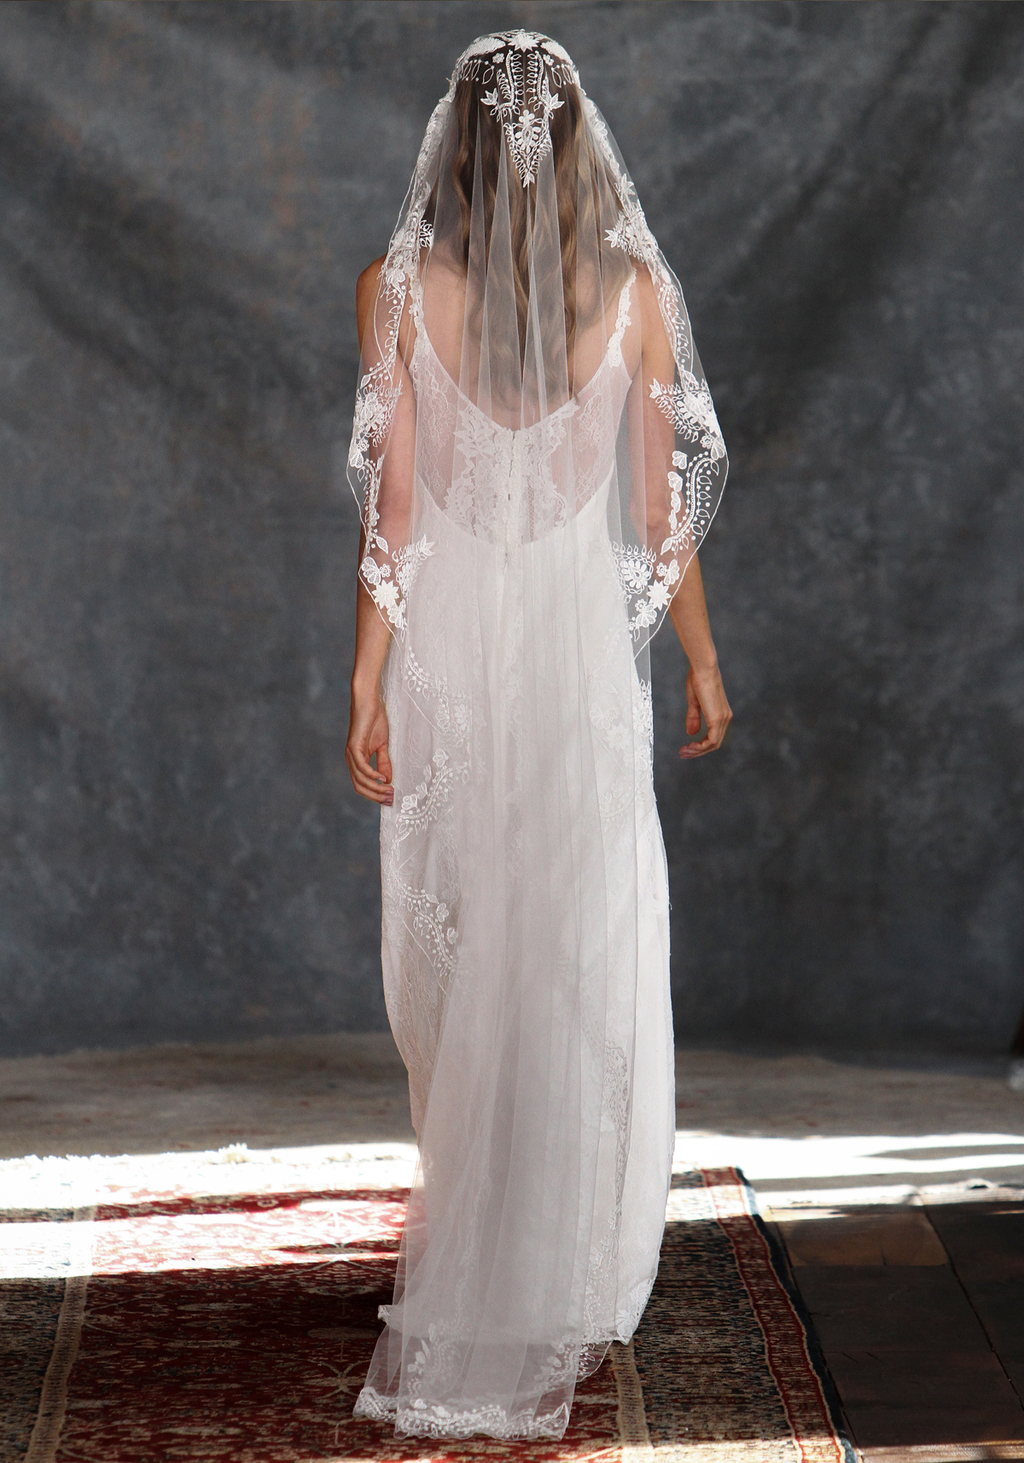 Adelaide_wedding_dress_back_from_claire_pettibones_romantique_collection.full